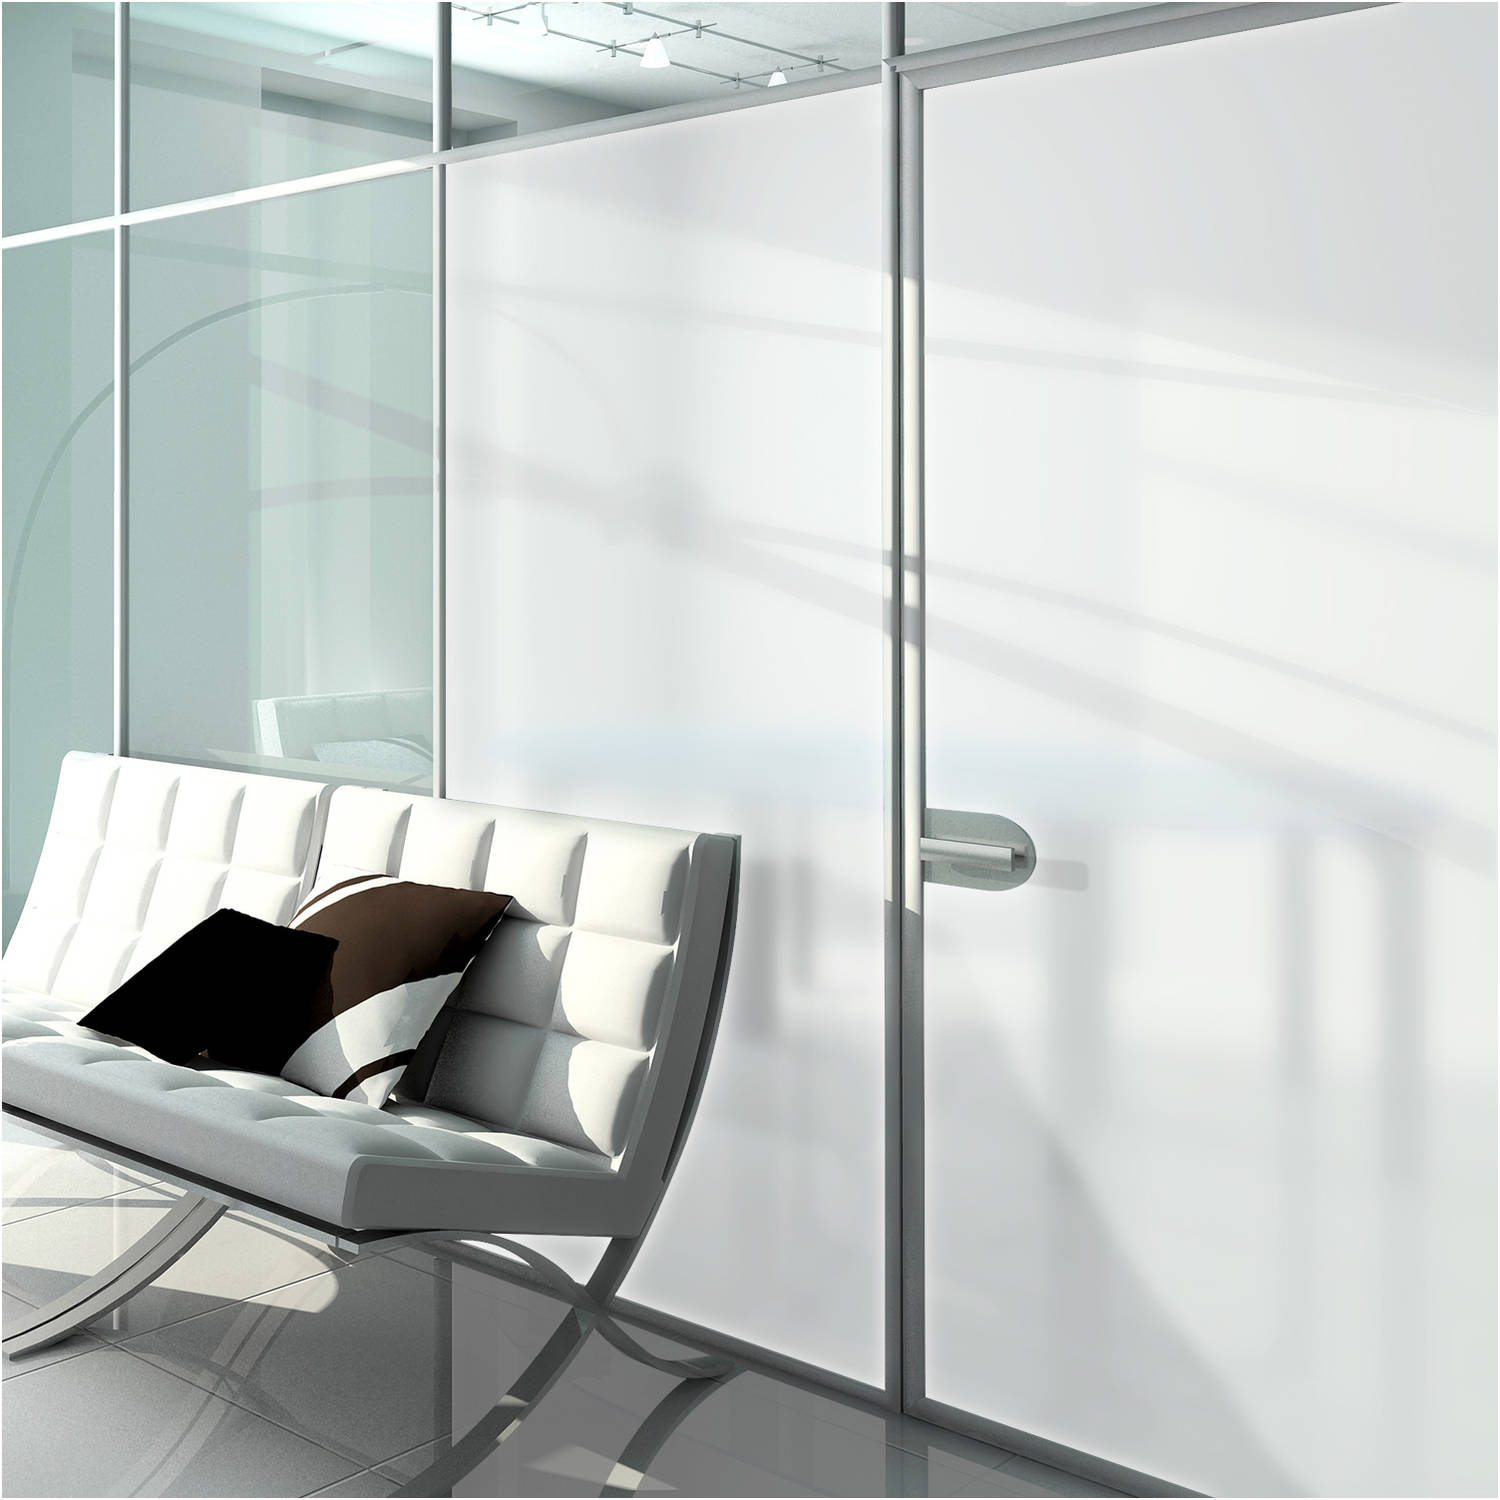 BDF MTWH White Frosted Privacy Window Film 36in X 25ft by BuyDecorativeFilm